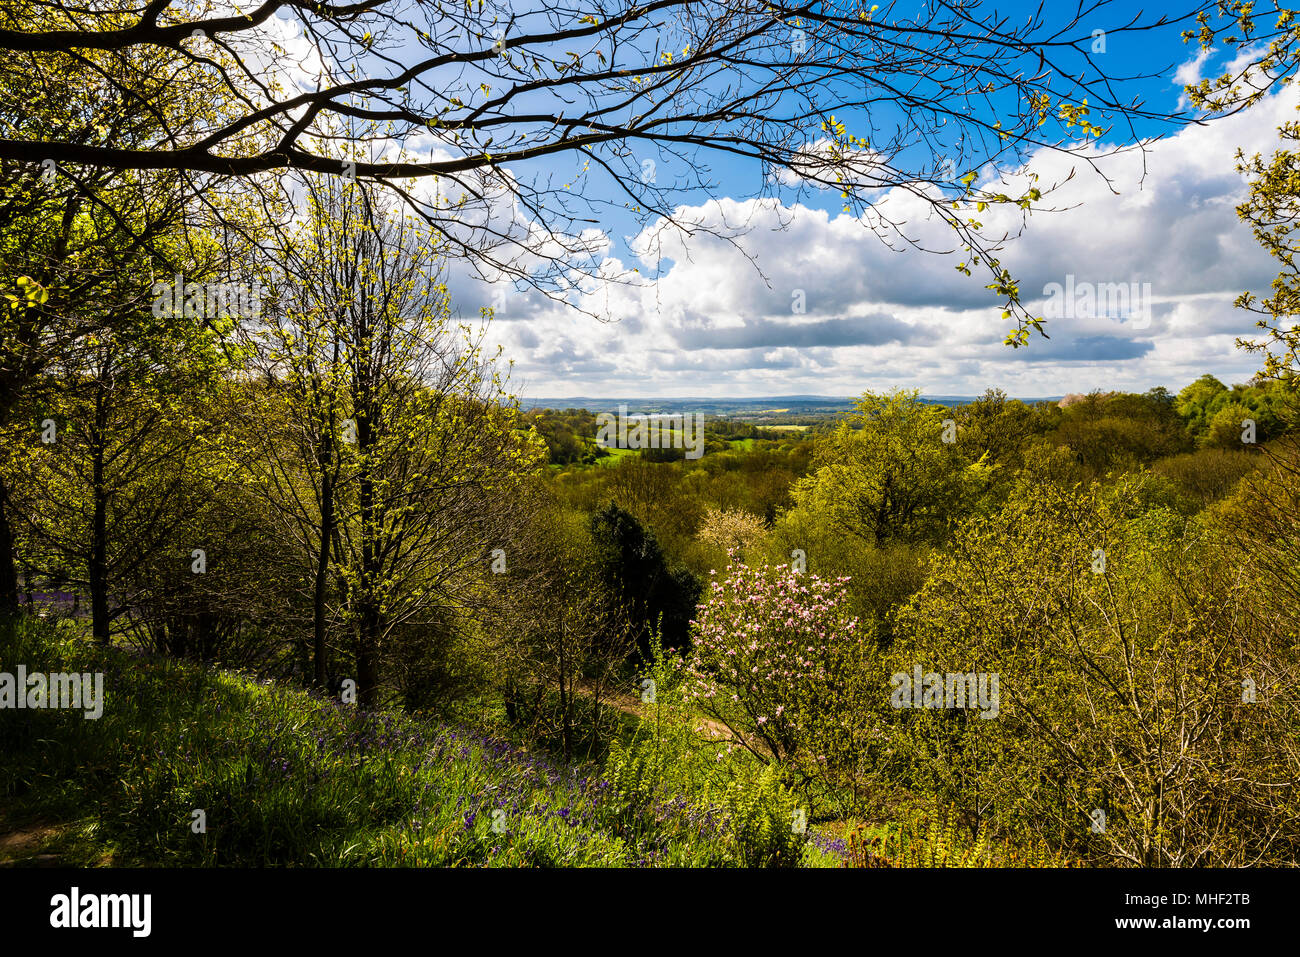 View over the valley from Emmetts Garden, Kent, UK - Stock Image